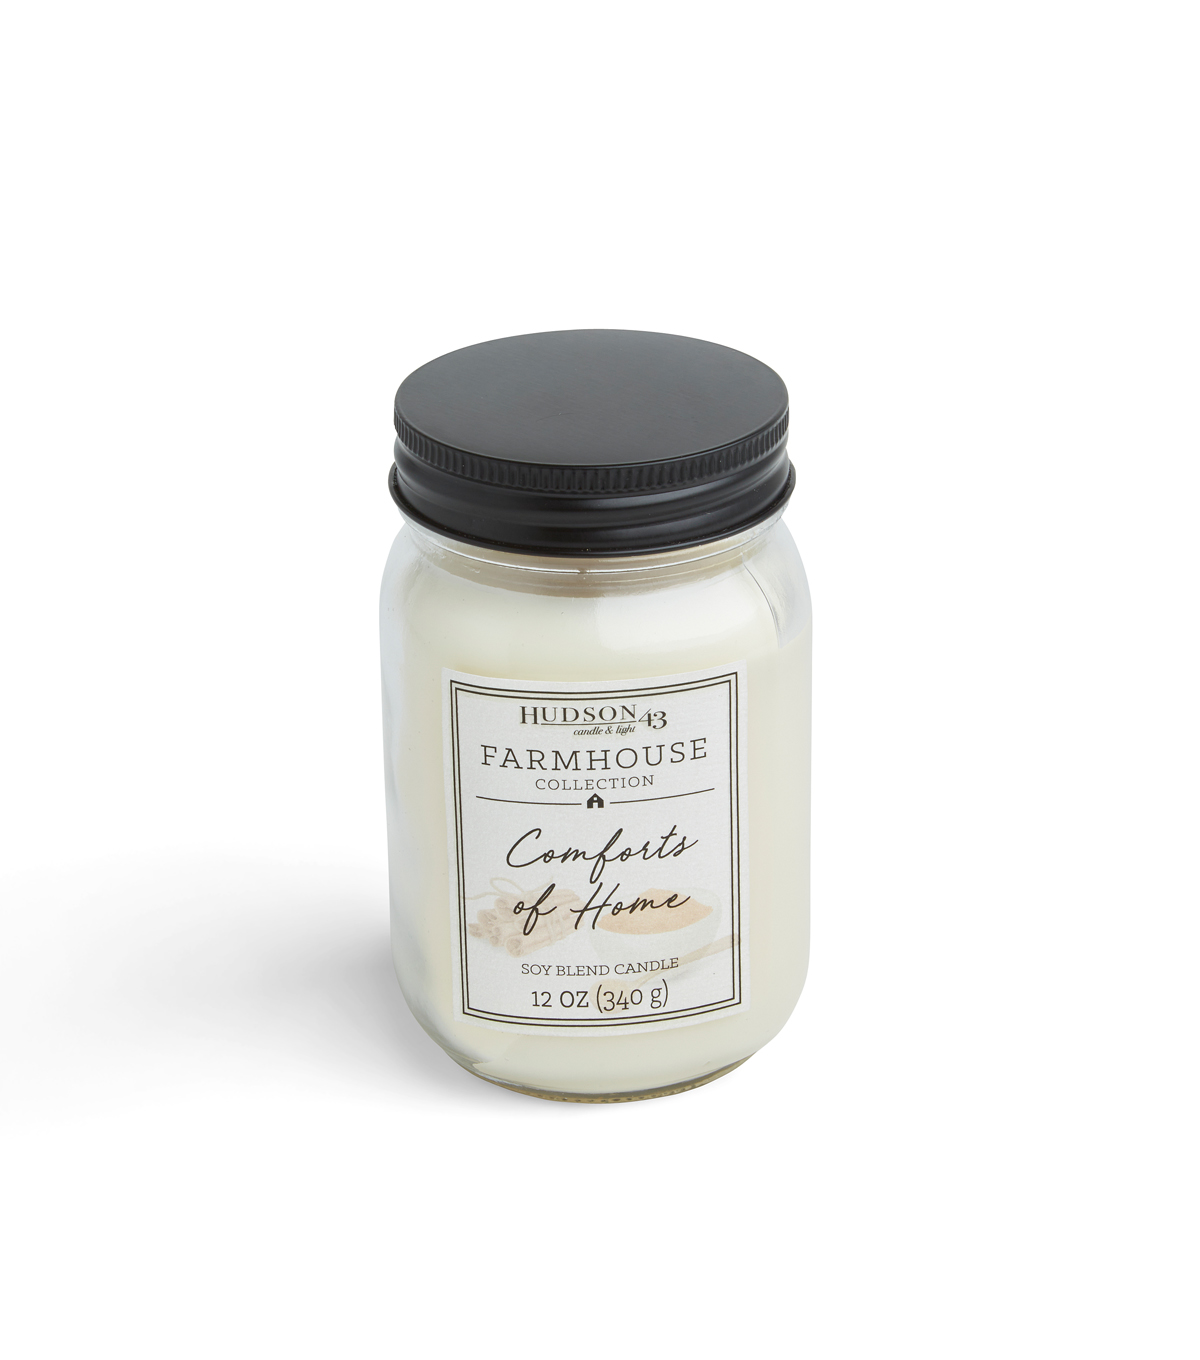 Hudson 43 Farmhouse Collection 12 oz. Comforts of Home Mason Jar Candle